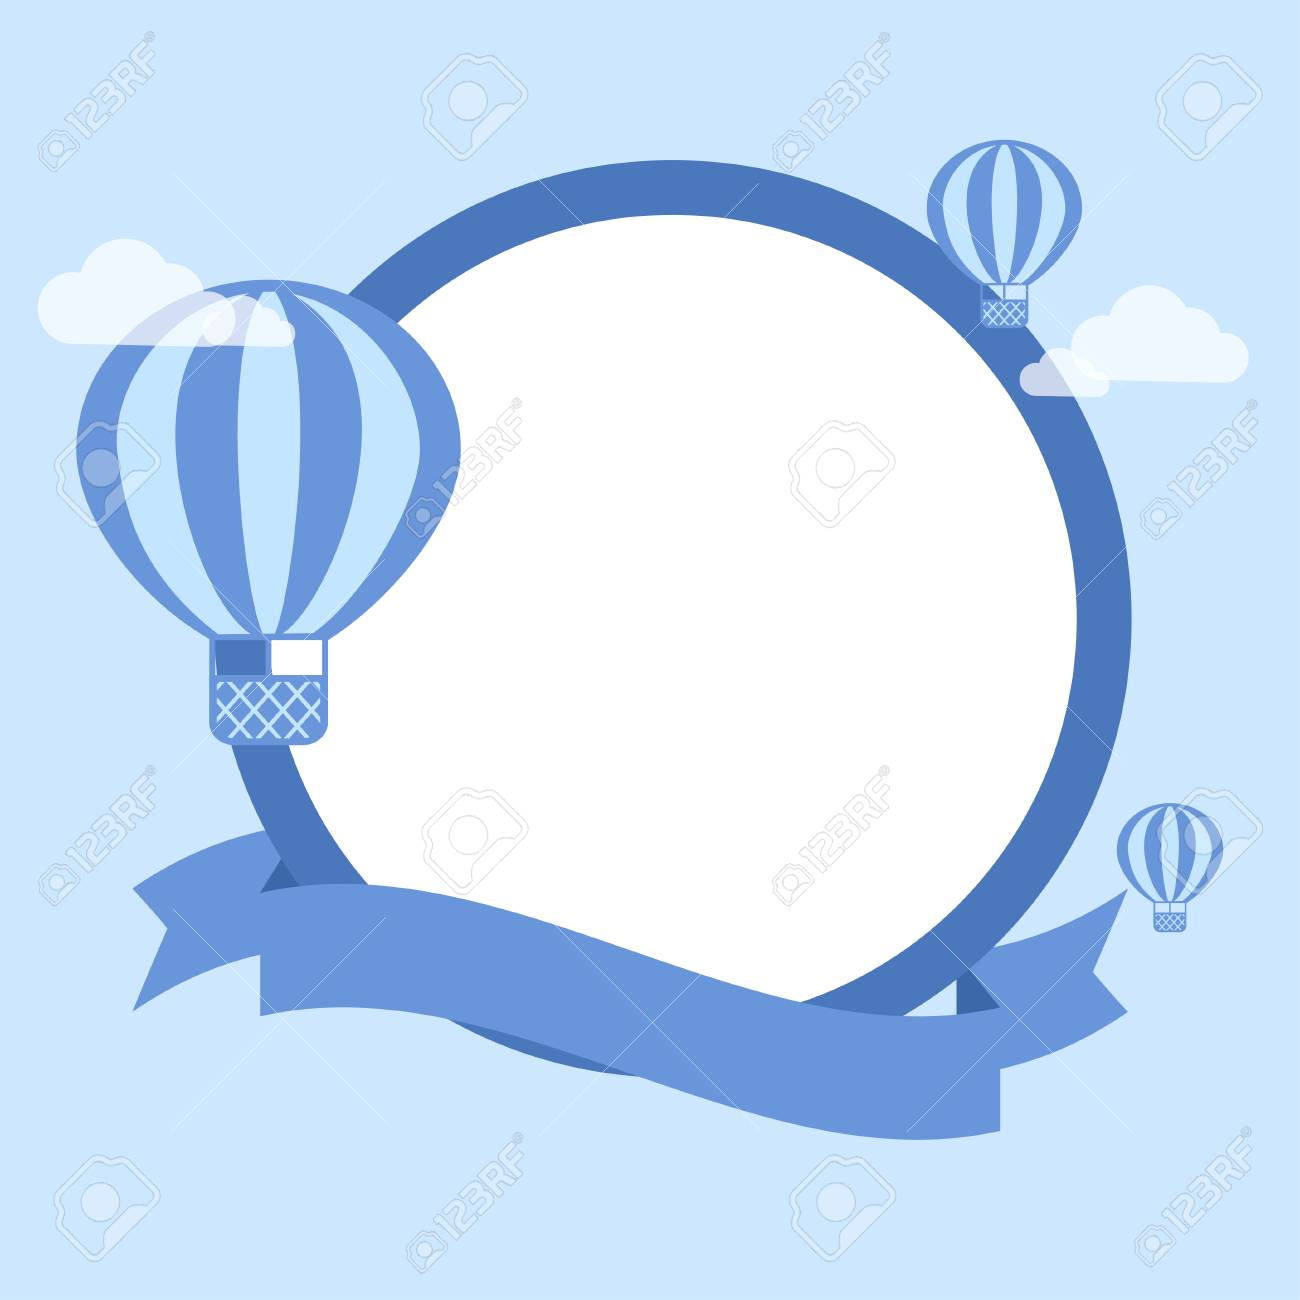 Cartoon Hot Air Balloon - Vector Background. Template For Greeting ...